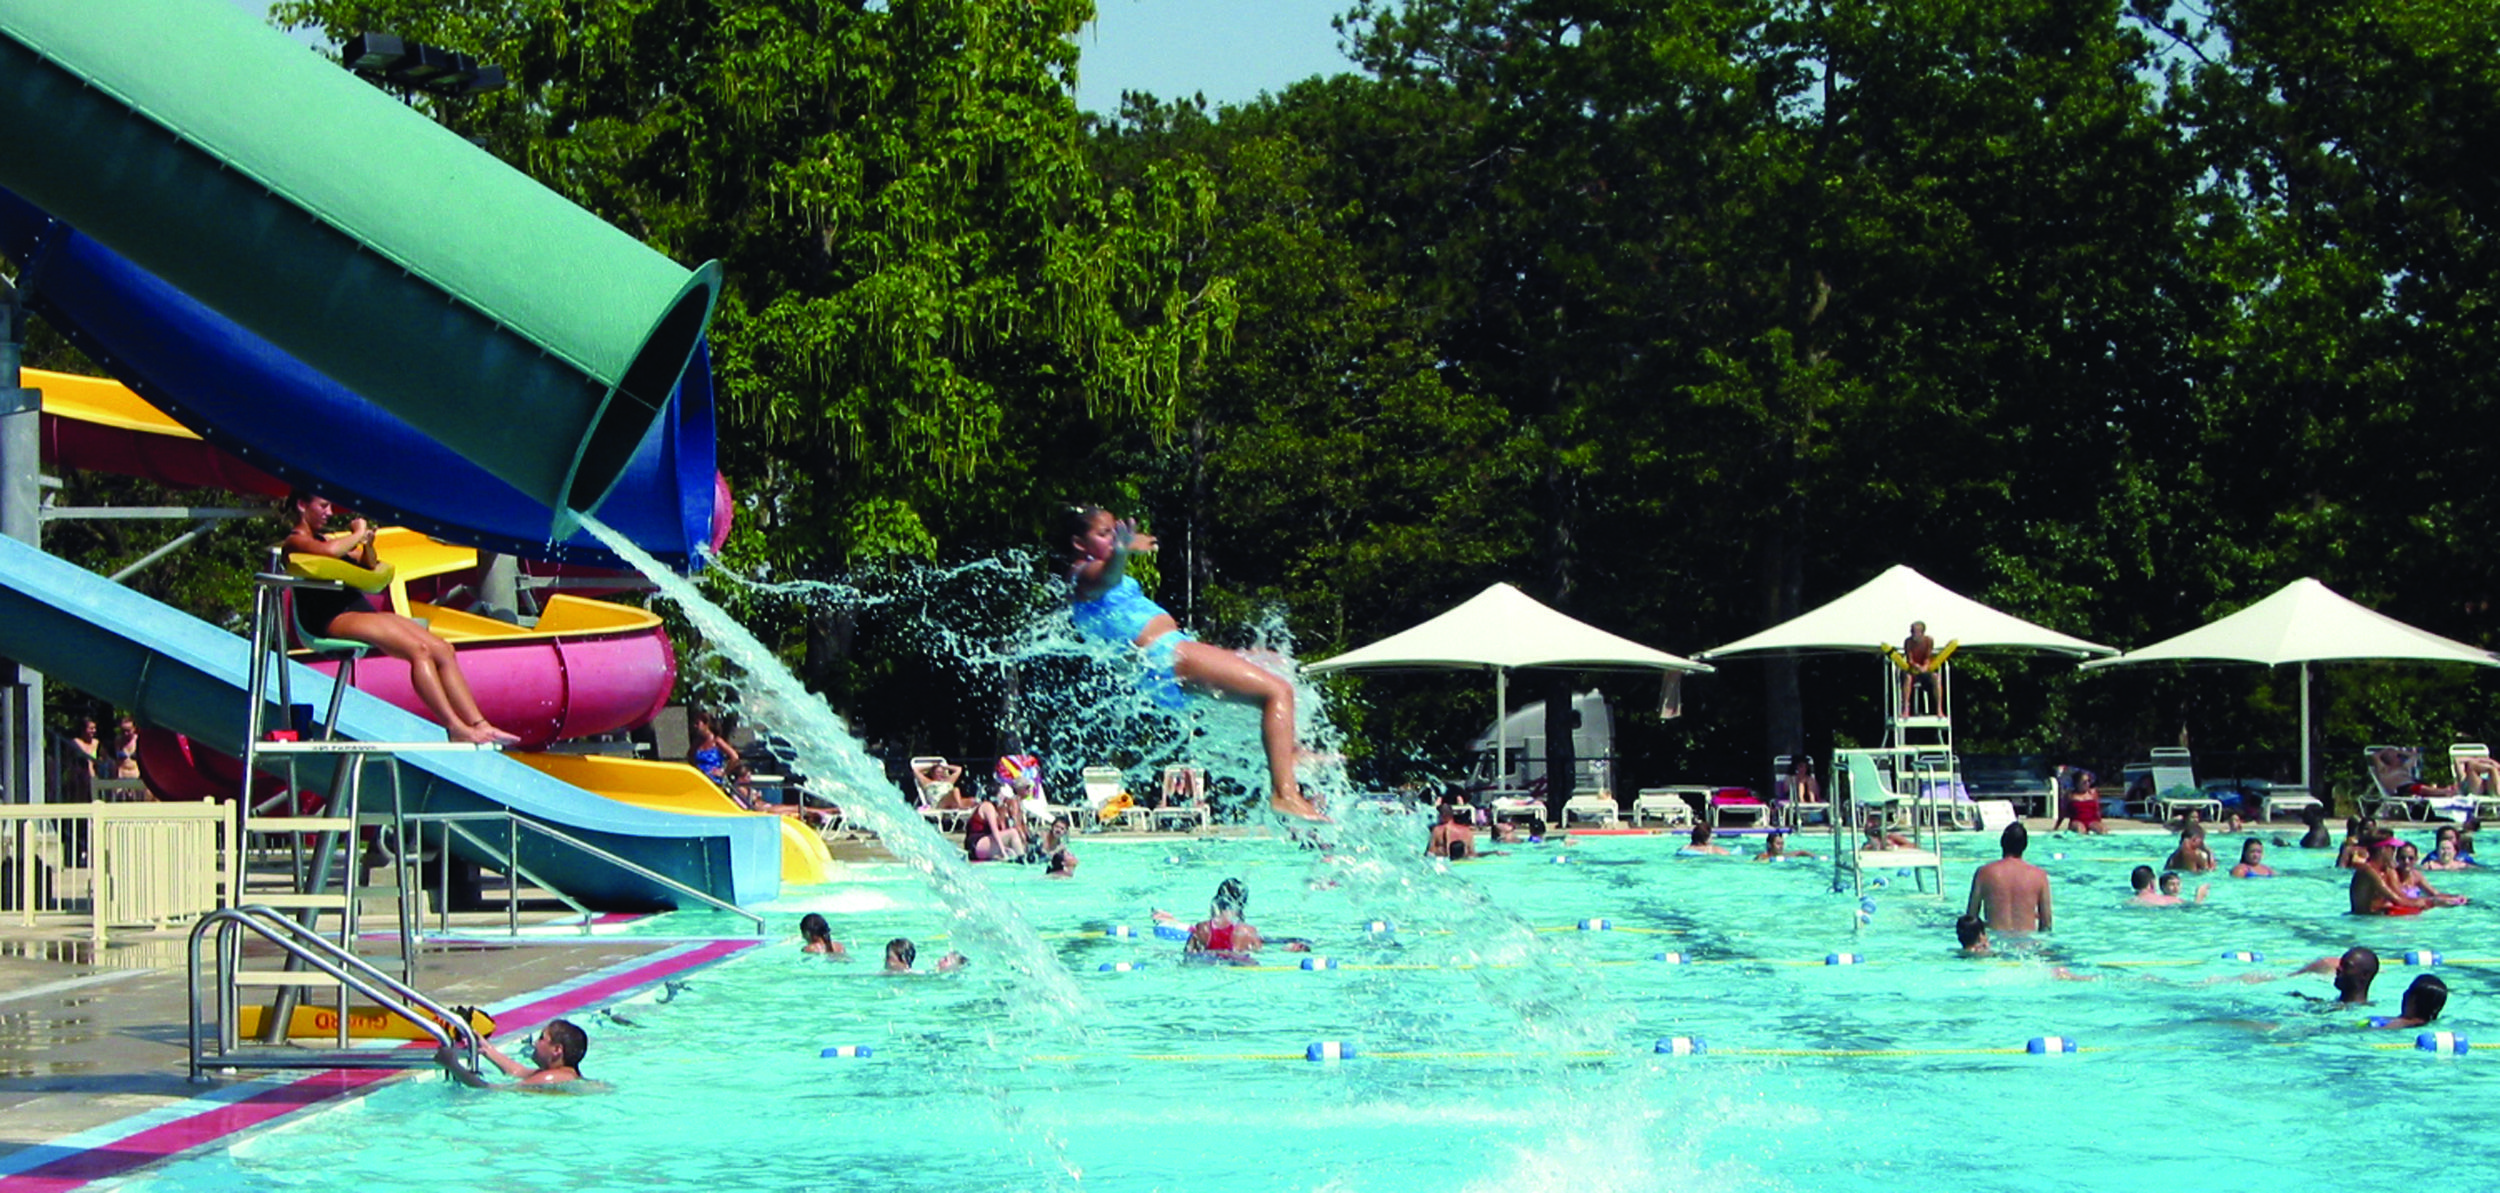 Enjoy A Fun Cooling Swim In Gage Park S Aquatic Center During The